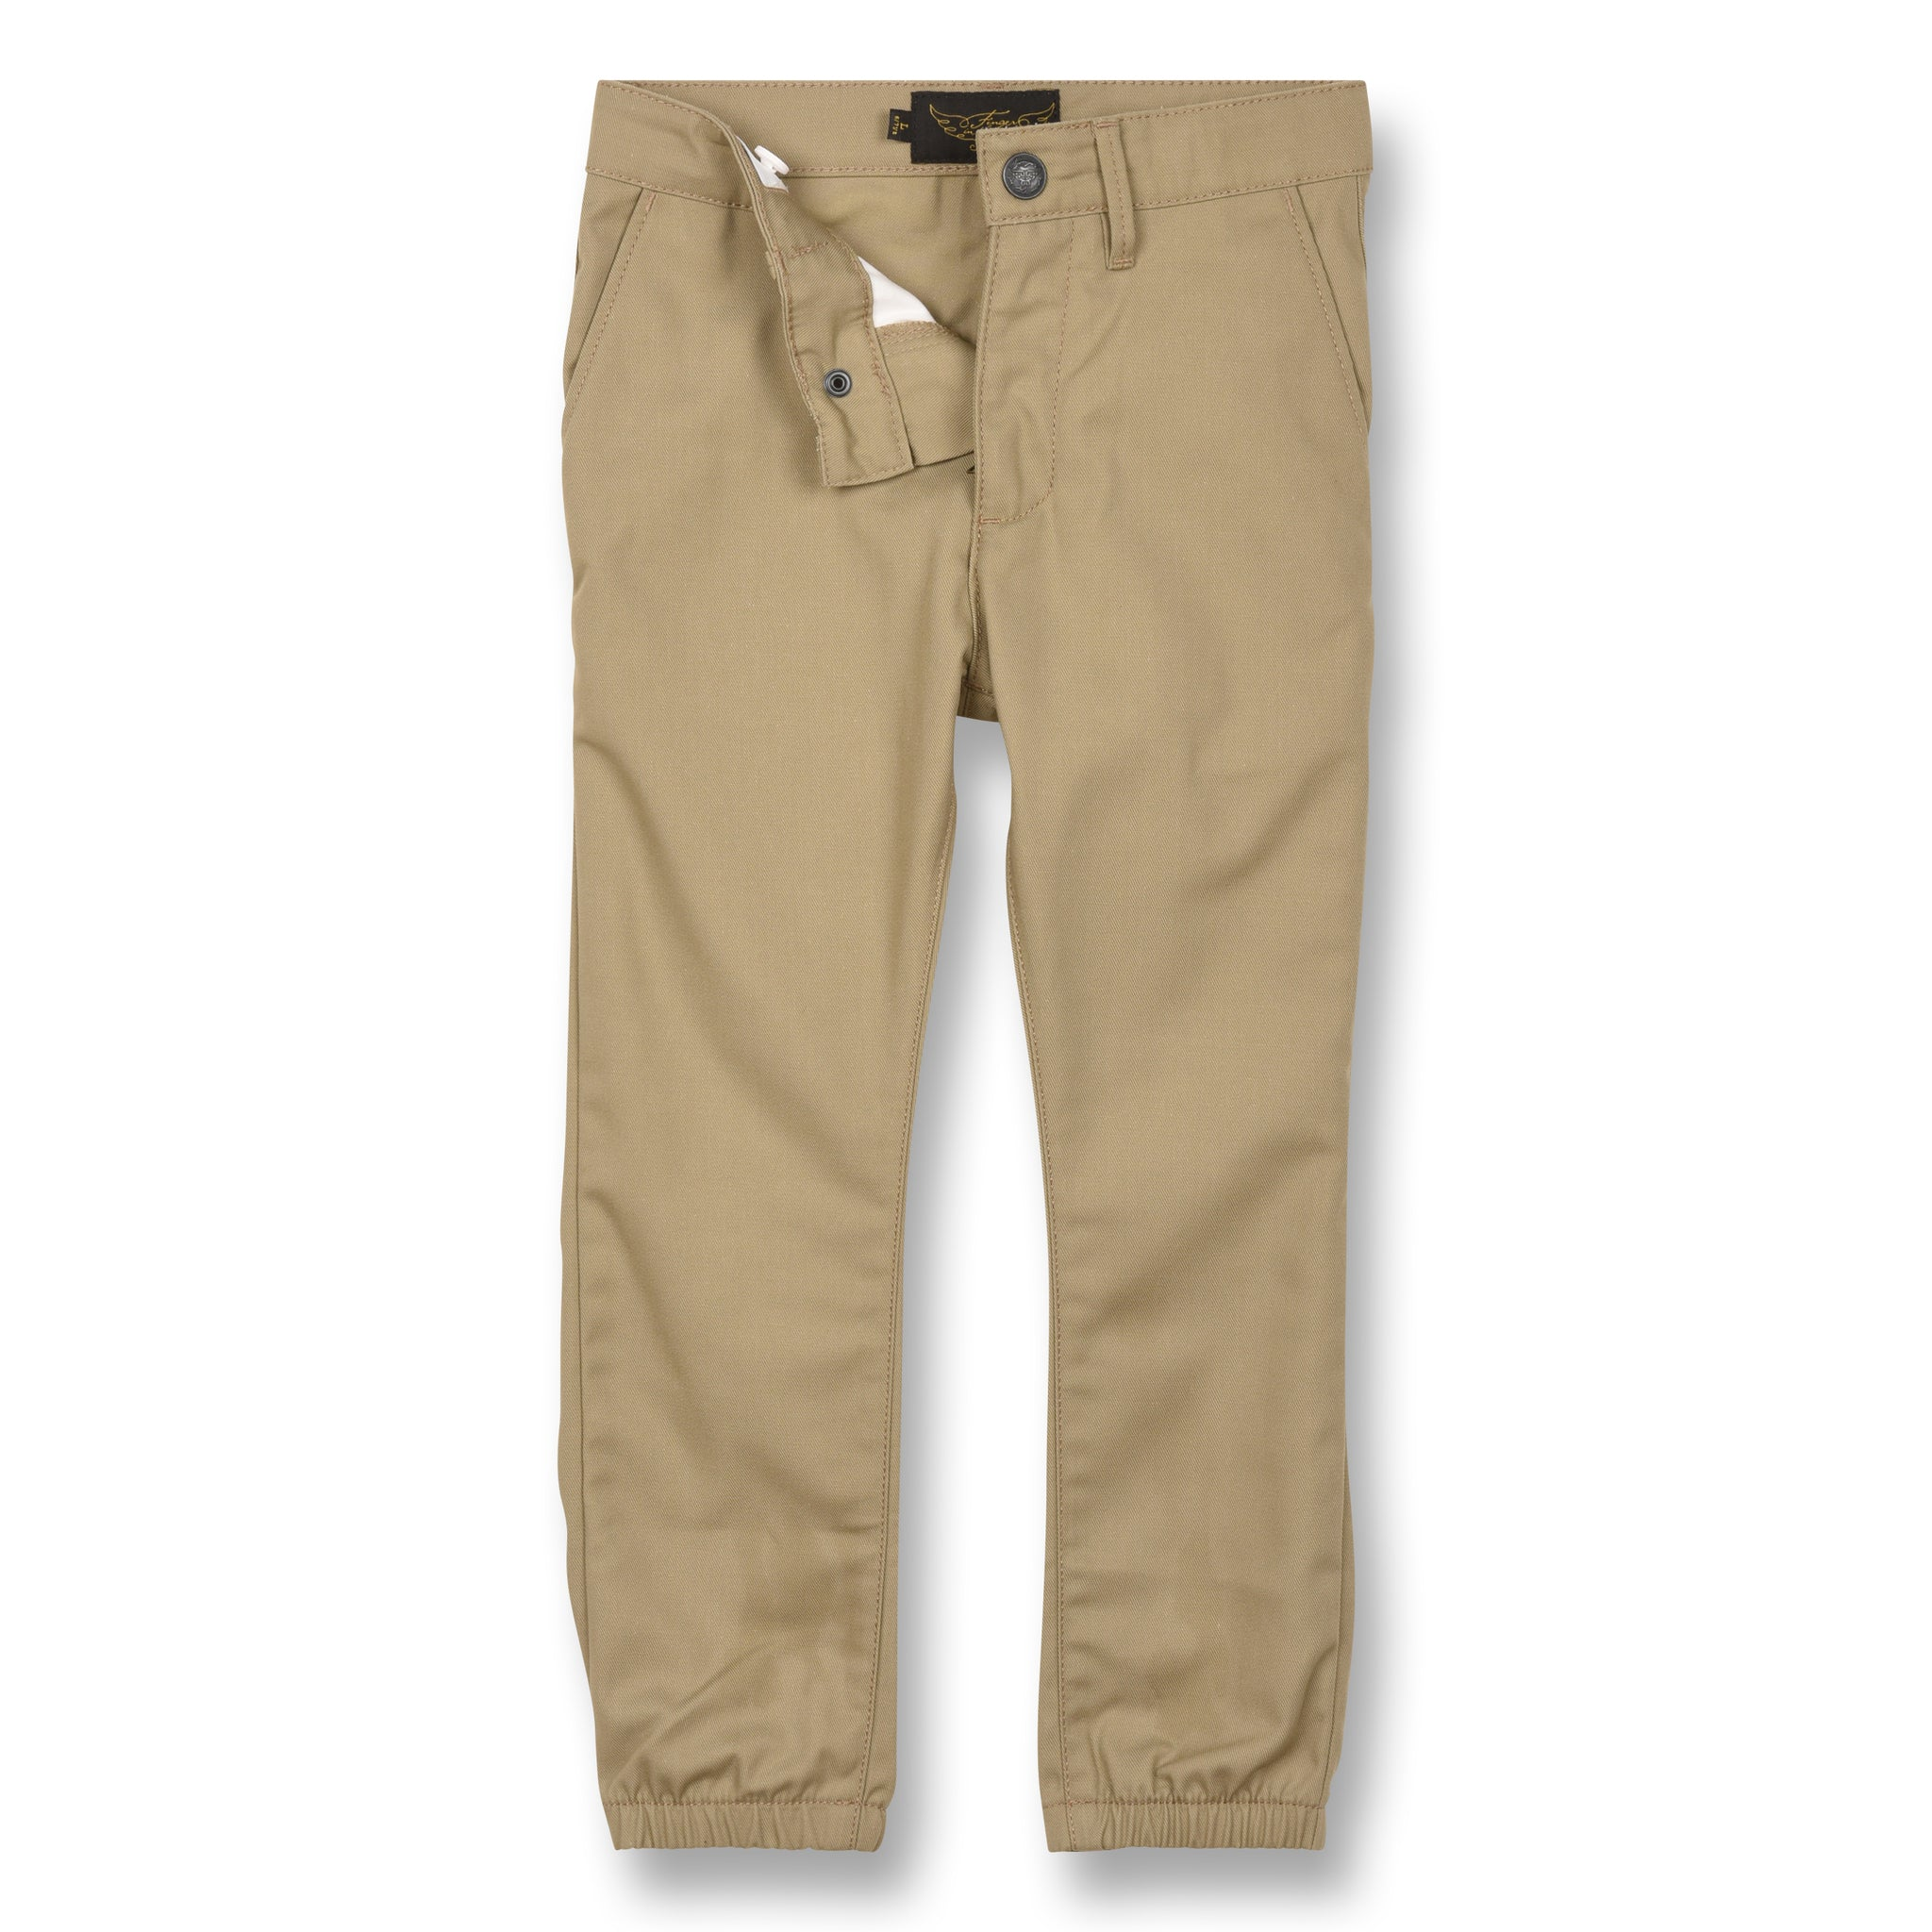 SKATER Linen - Elasticed Bottom Chino Fit Pants 3